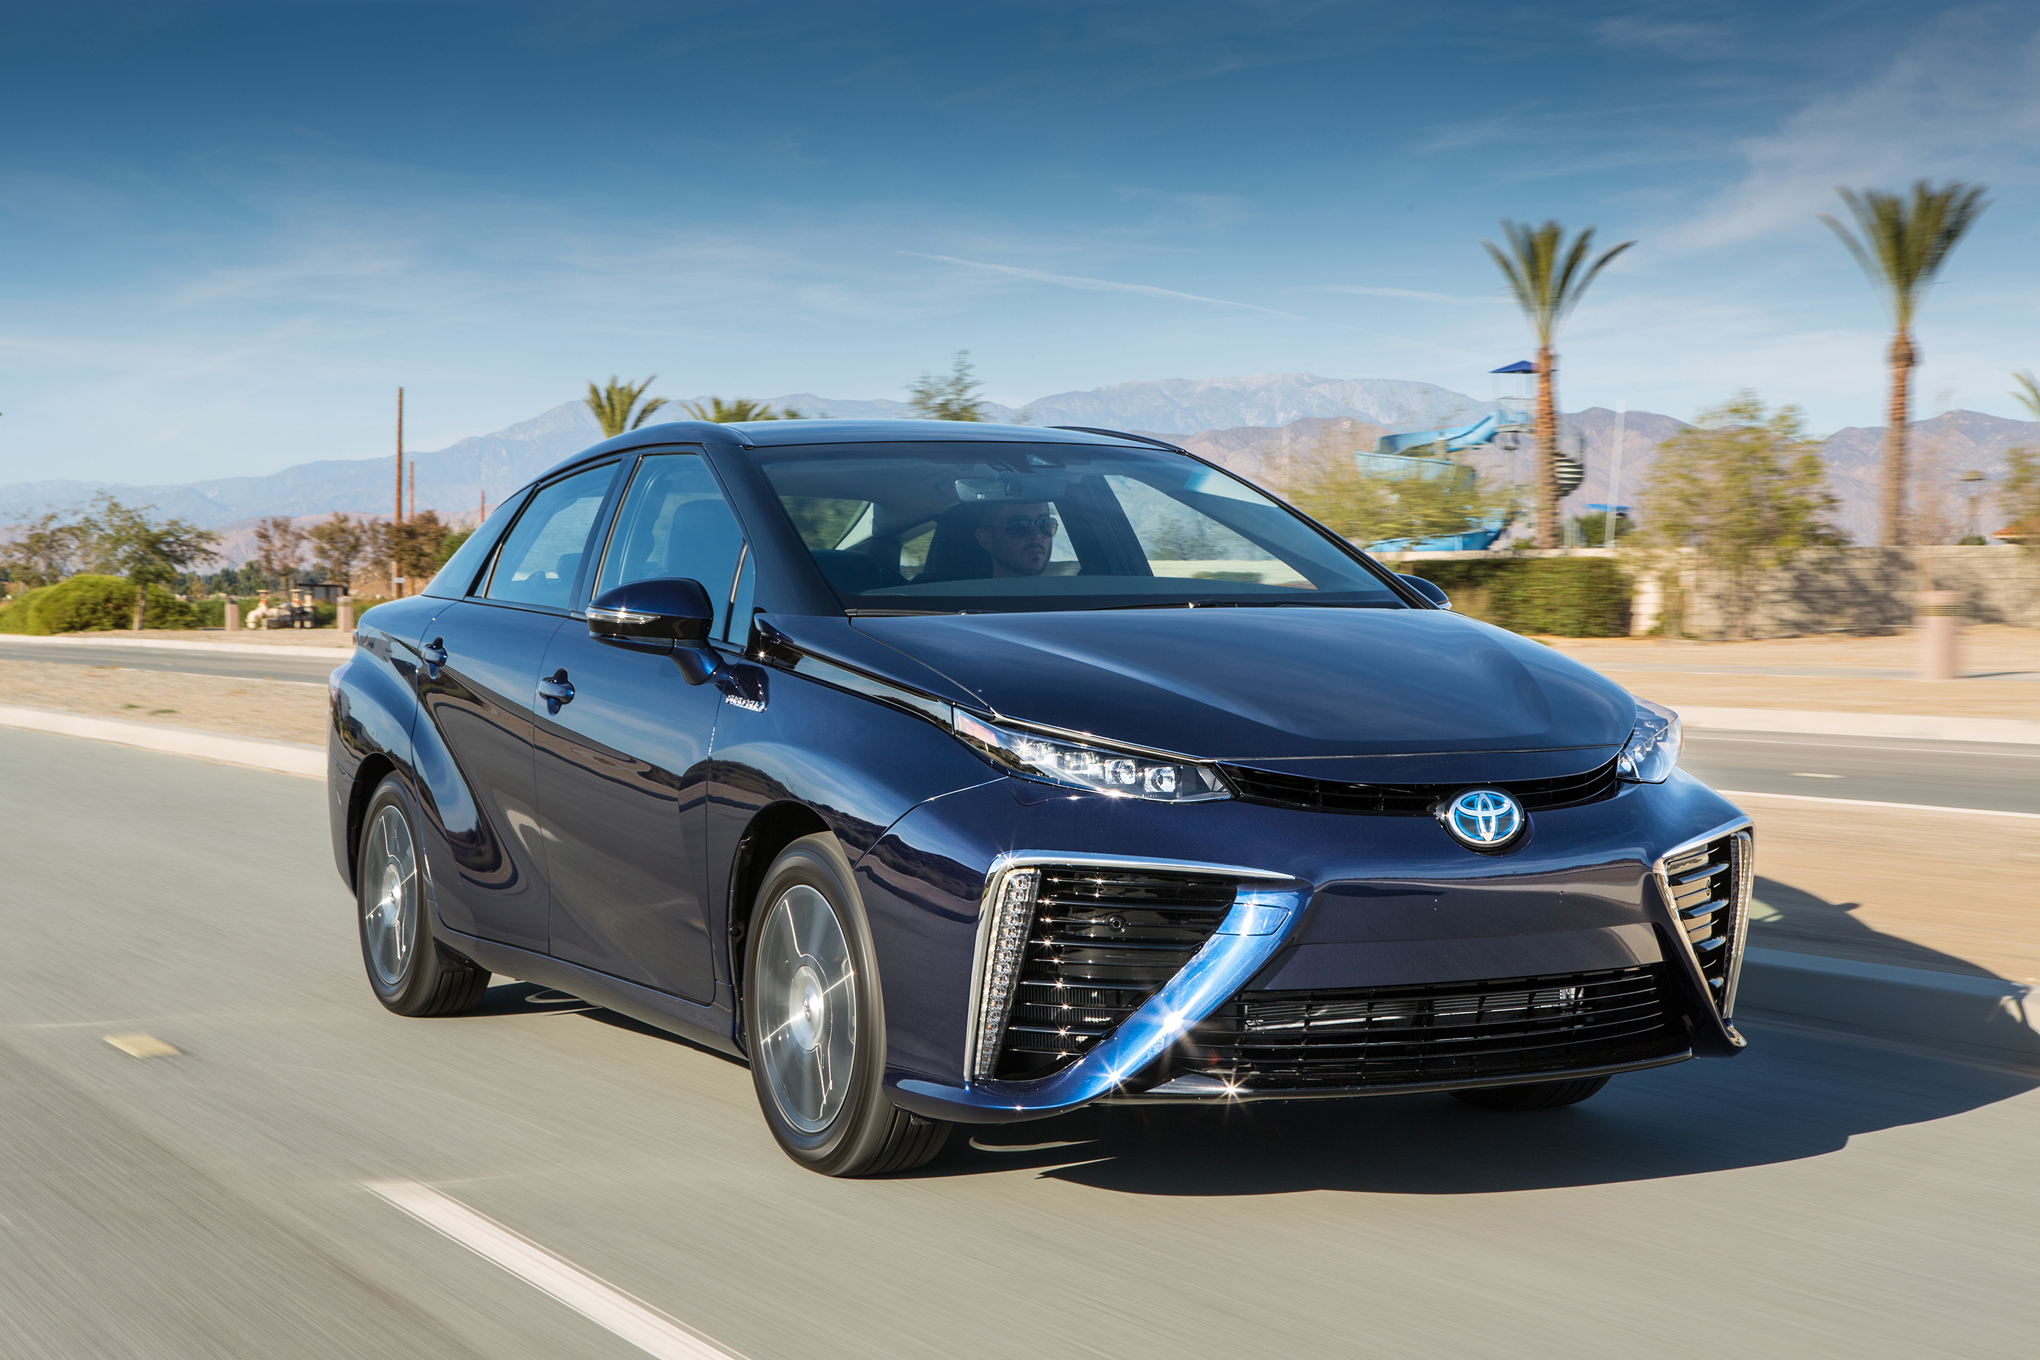 2016 Toyota Mirai Exterior Profile (View 12 of 18)